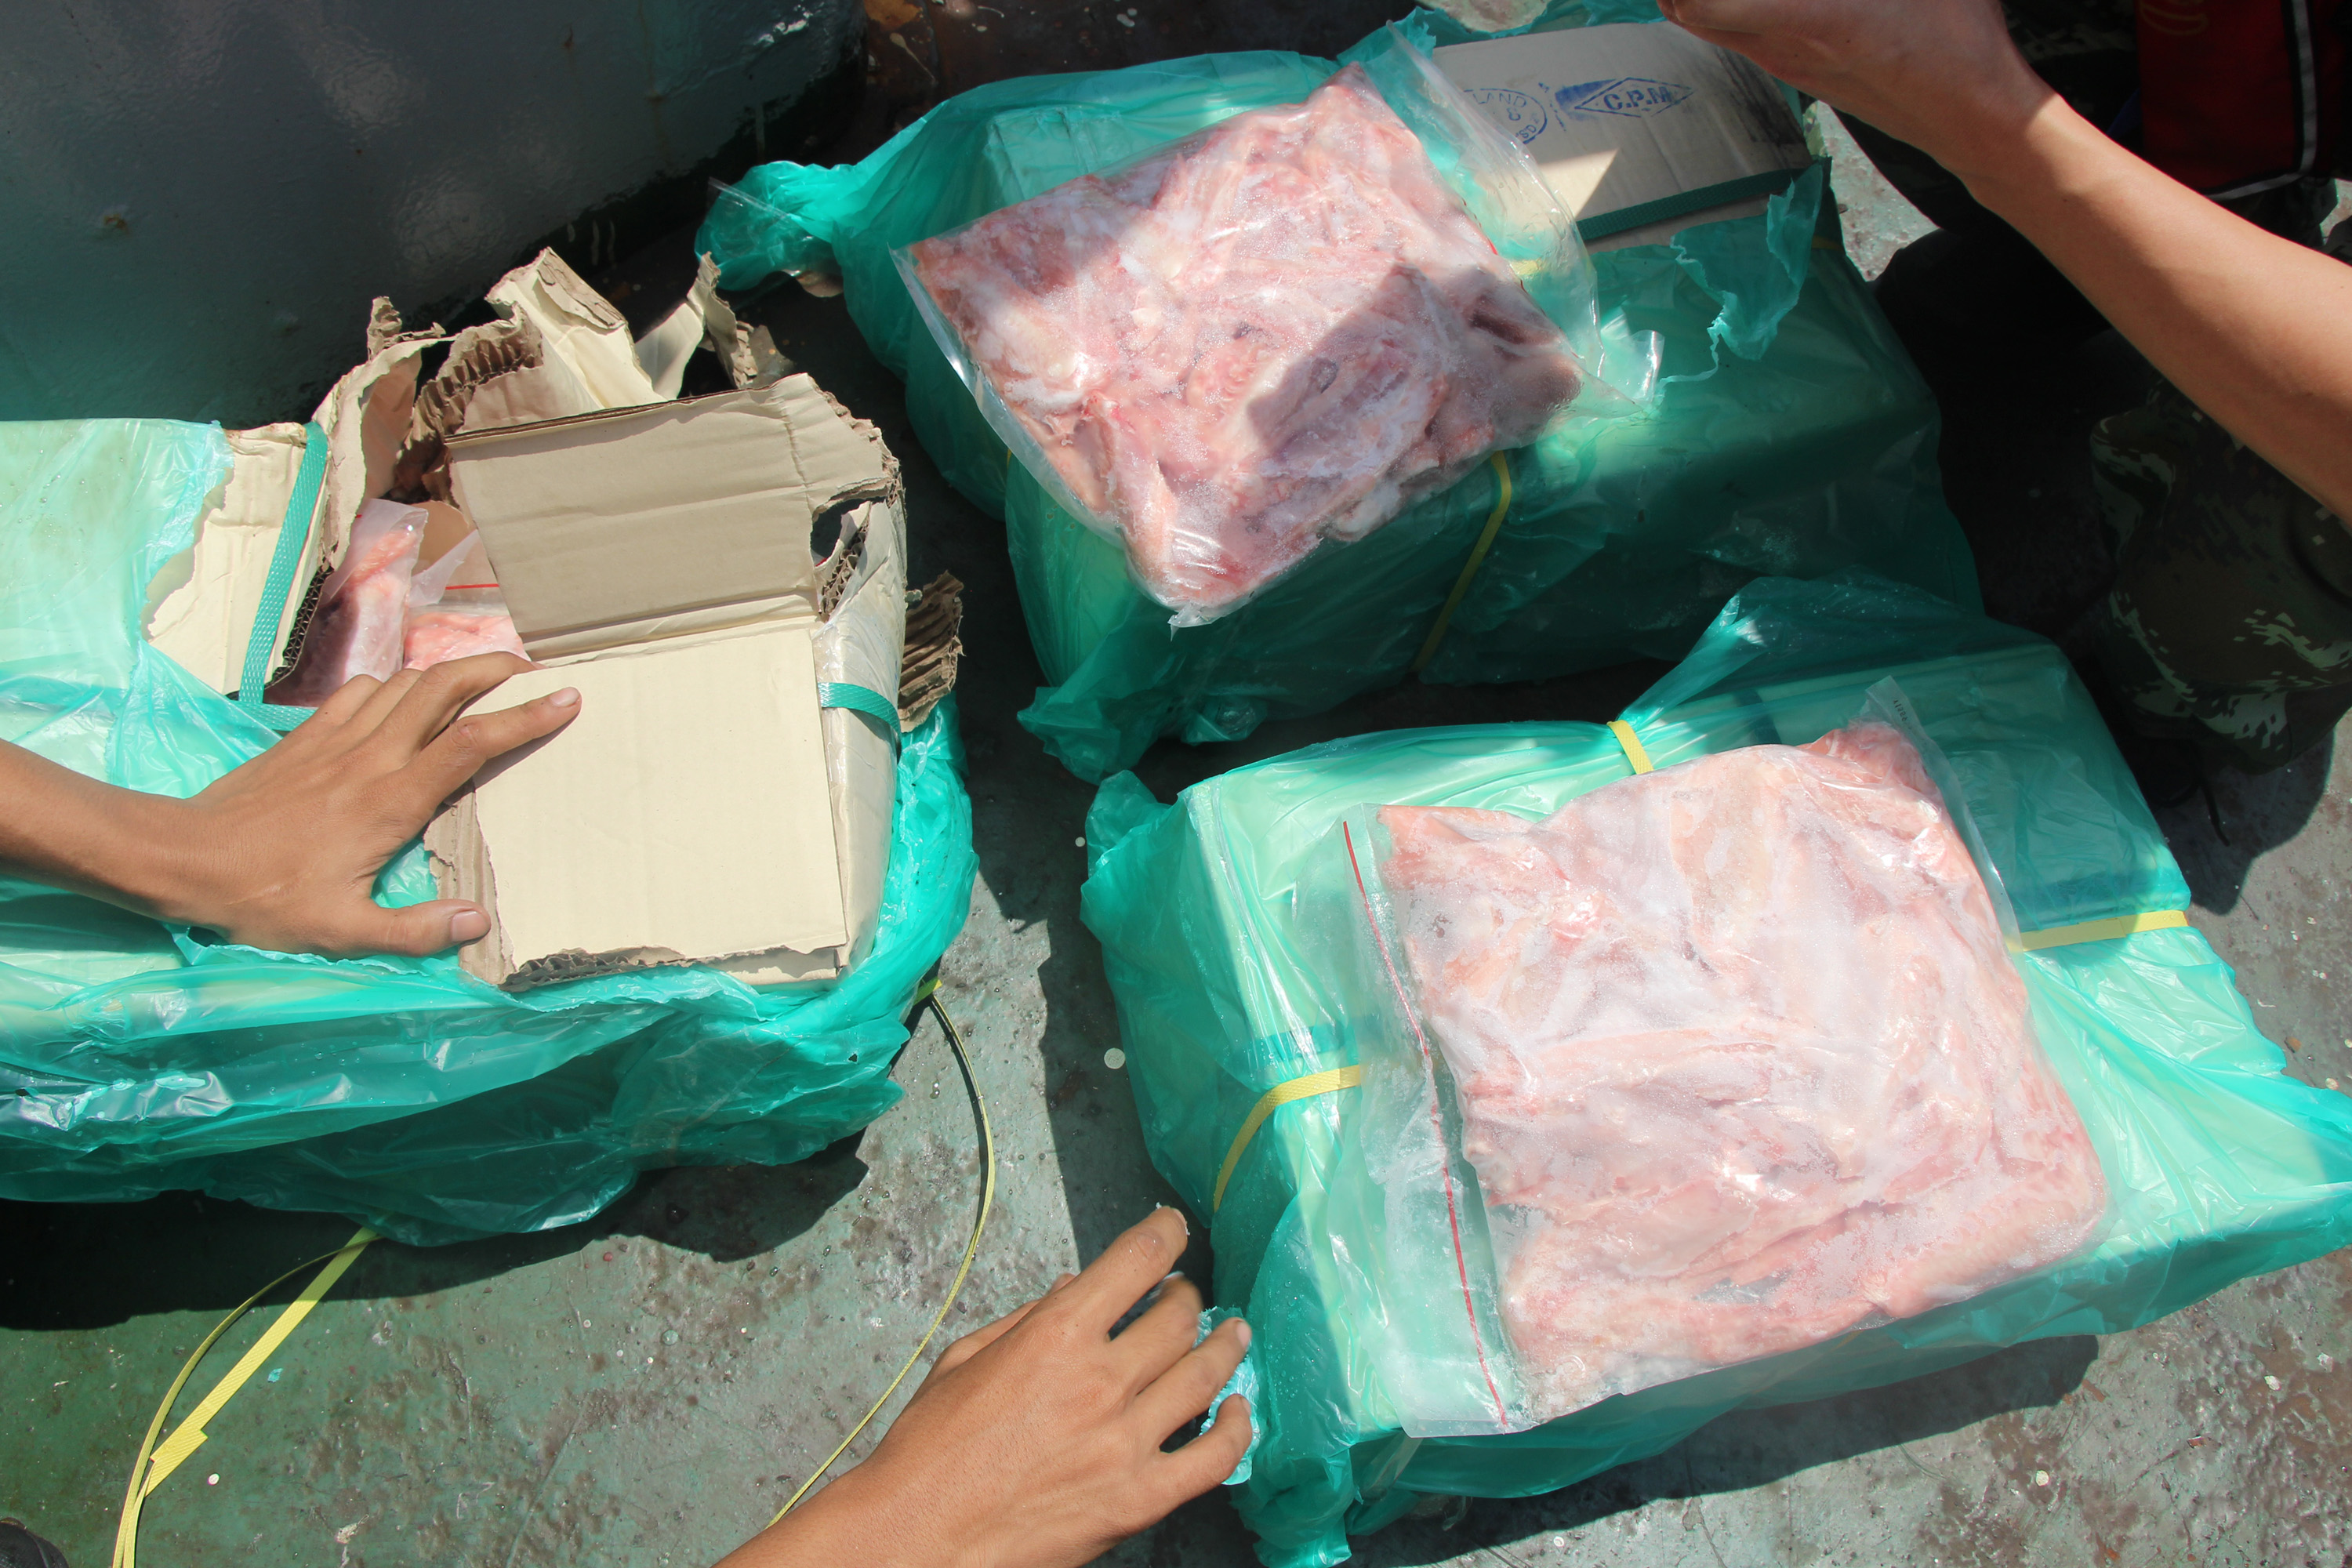 Chinese police officers check cartons of smuggled meat seized during a raid on a boat in Shenzhen, in southern China's Guangdong province, on Sept. 16, 2016